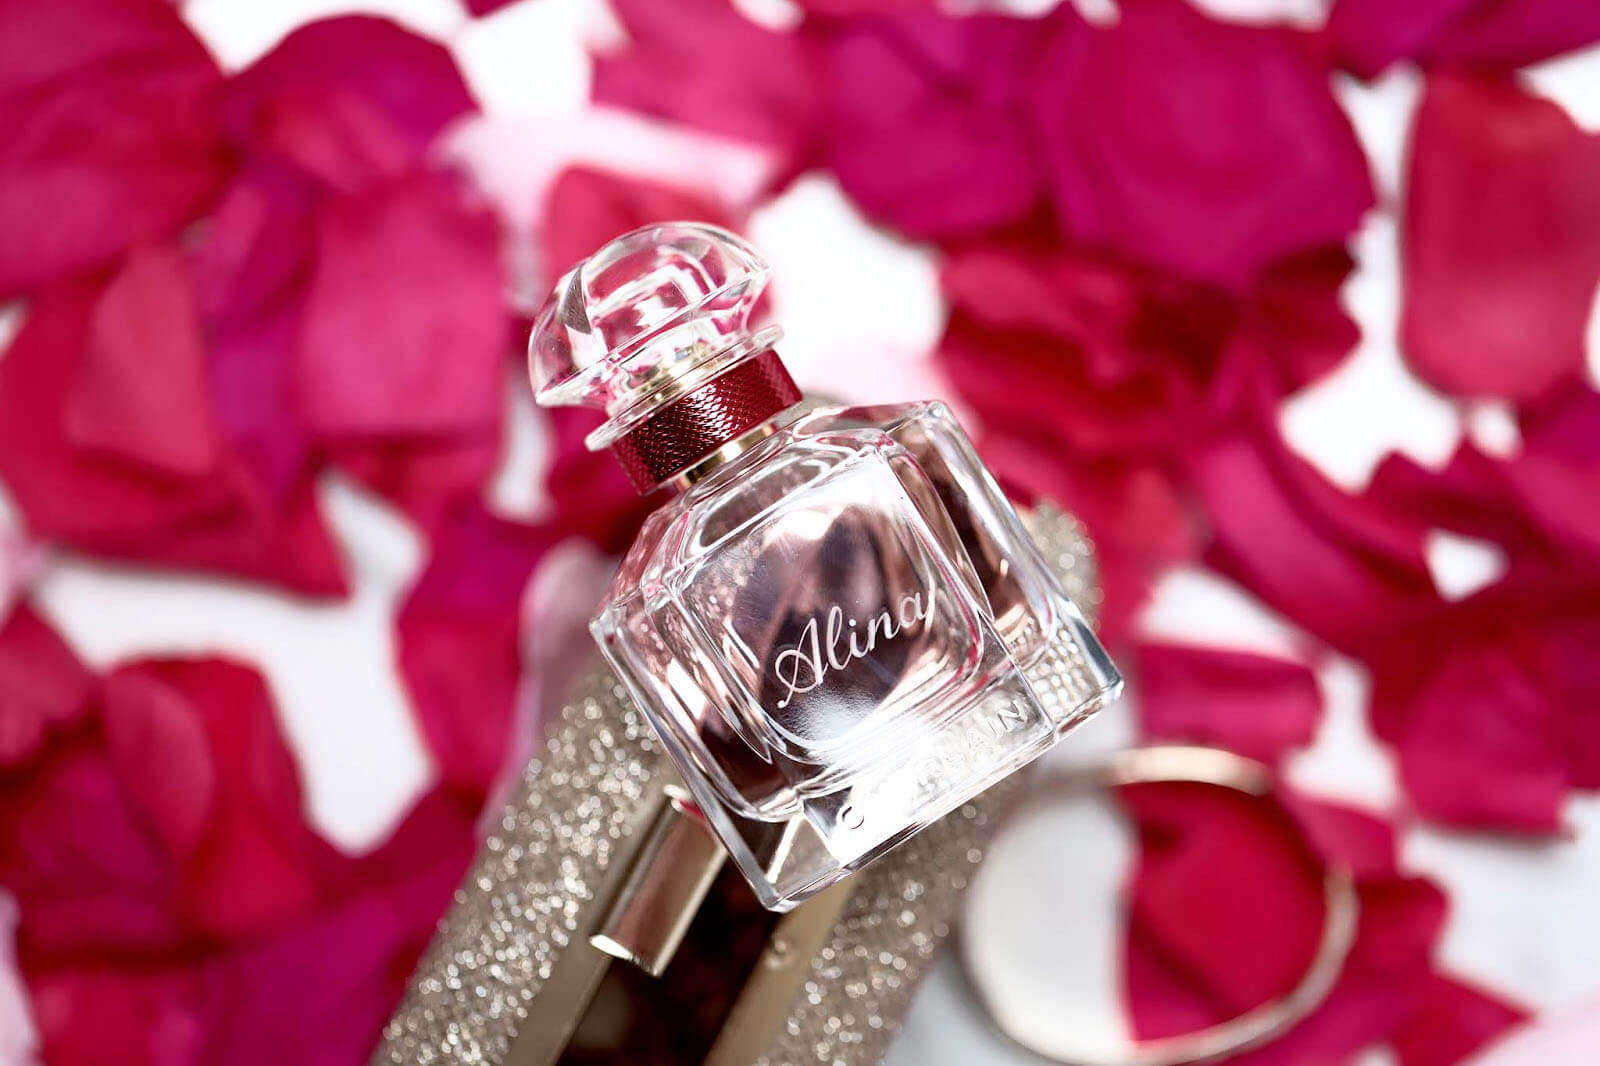 Mon Guerlain Bloom Of Rose test